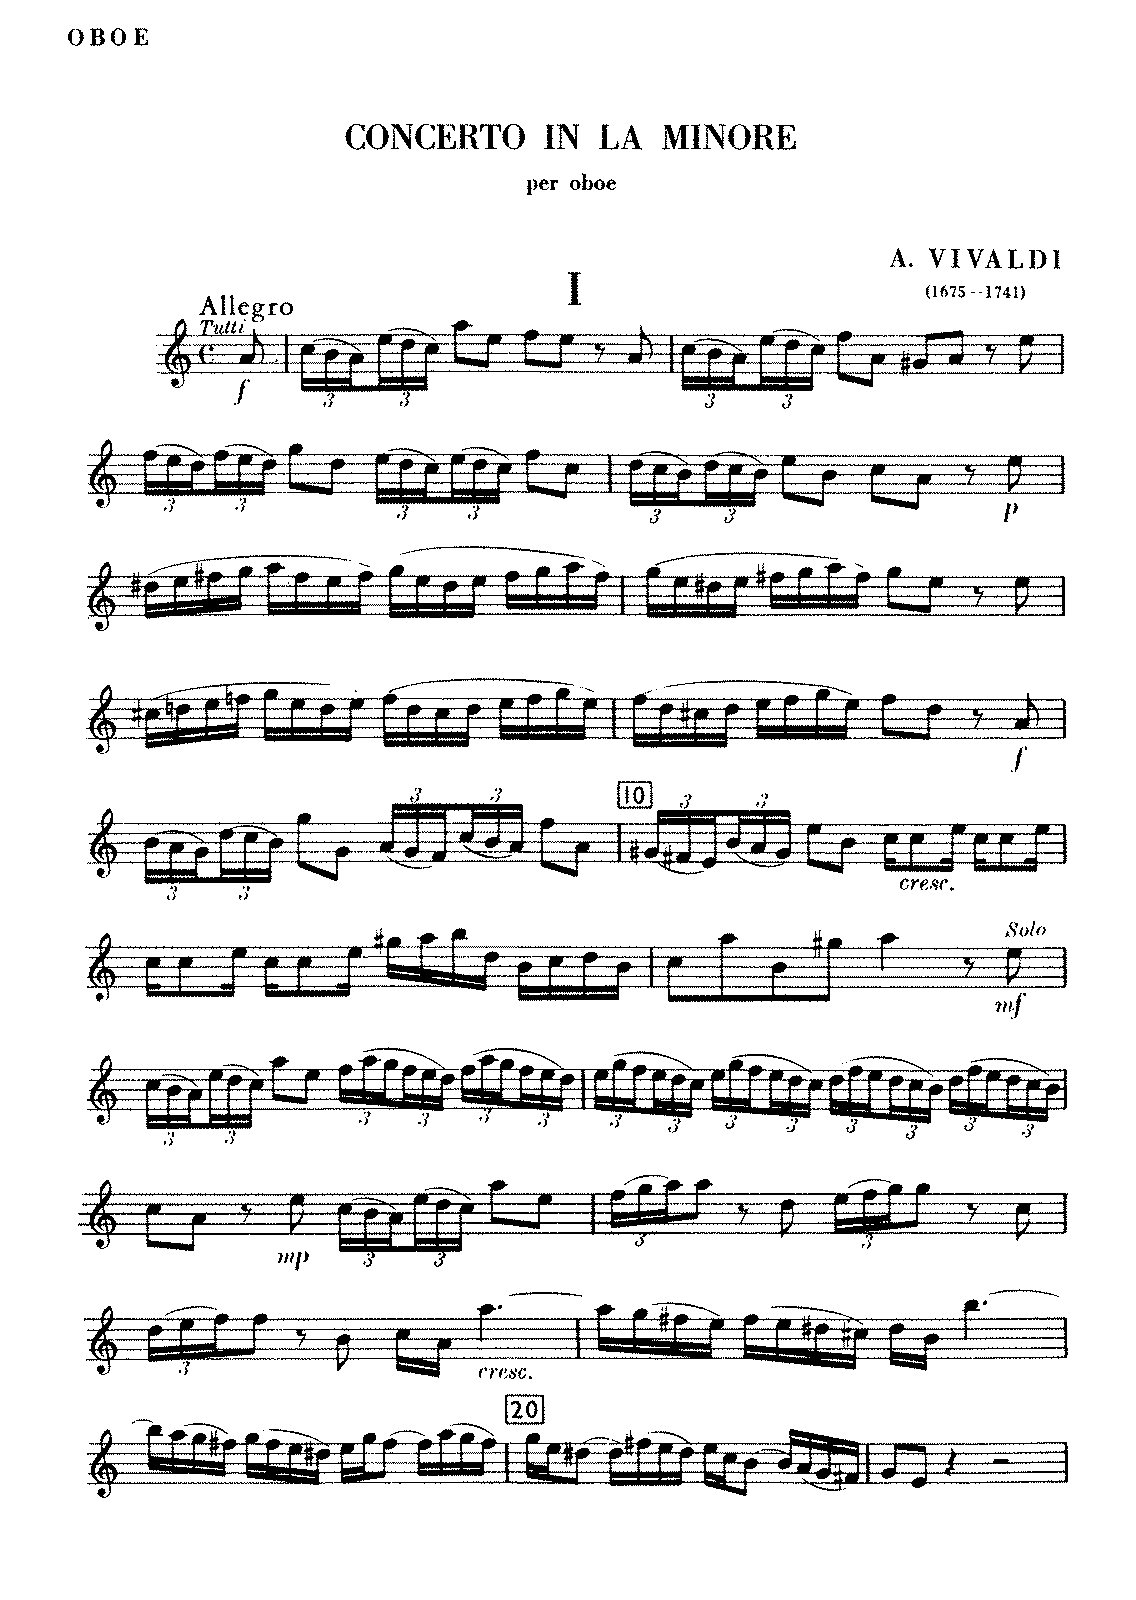 PMLP197212-Vivaldi - Oboe Concerto in A minor, RV 4612 (piano reduction).pdf